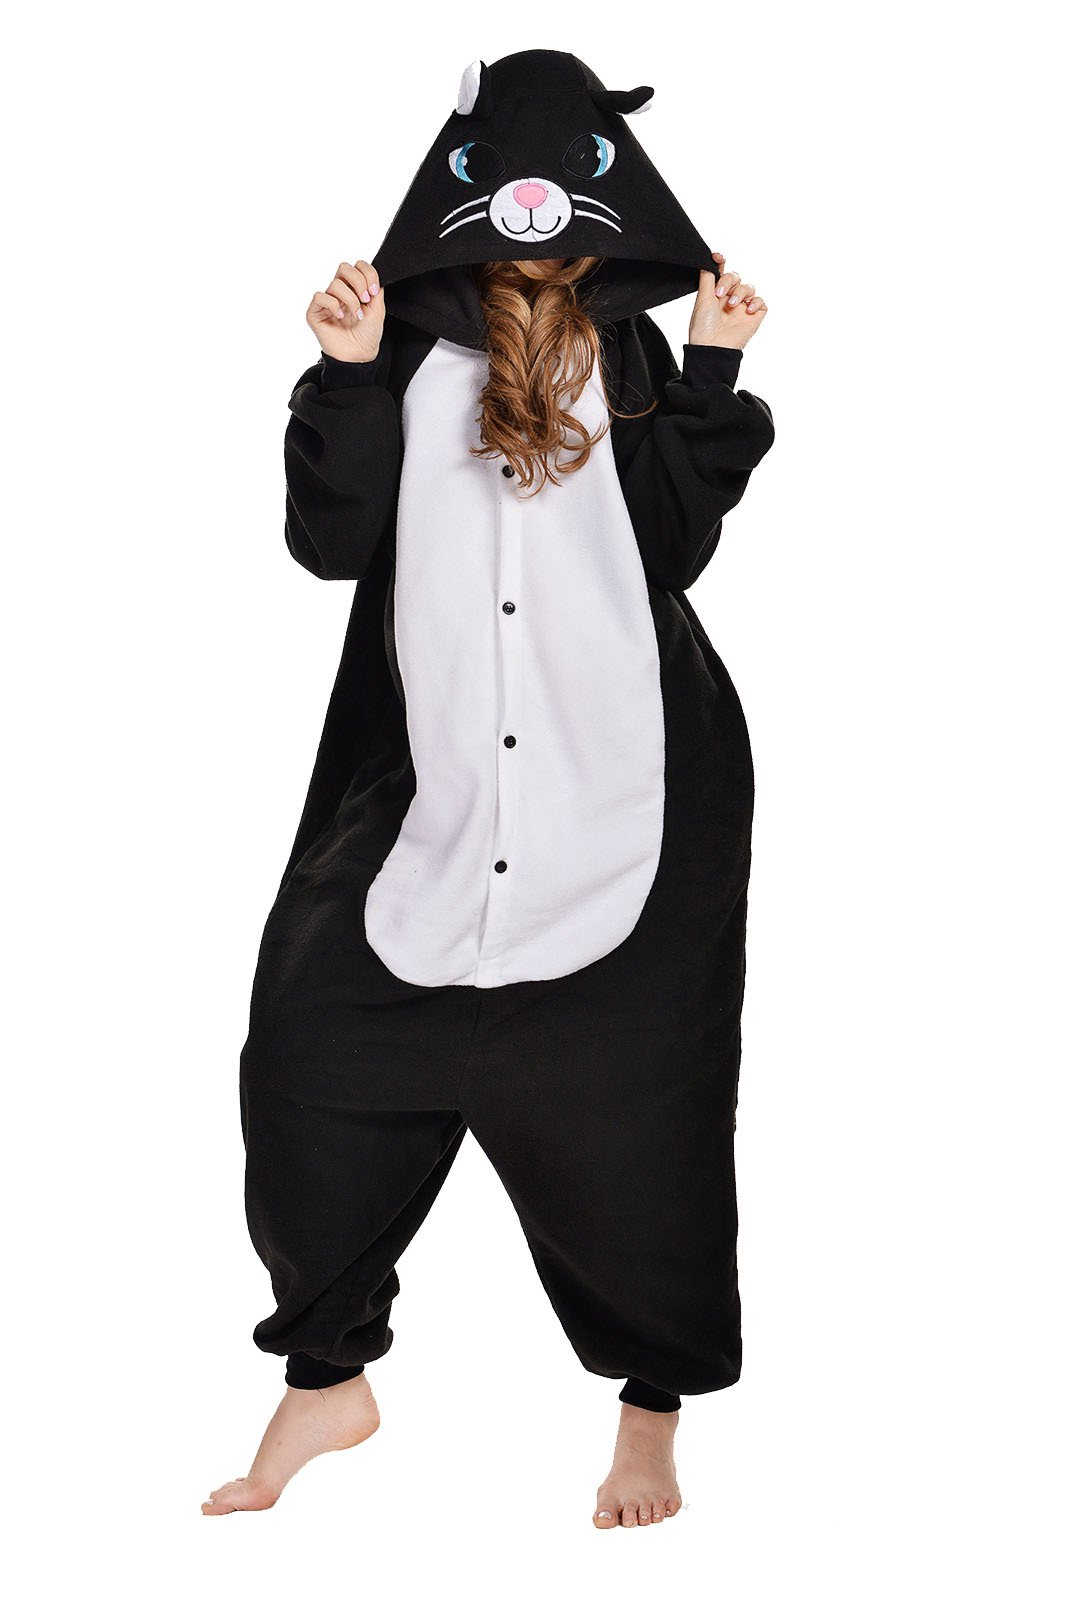 Black Cat Kigurumi Pajamas Adult Anime Cosplay Halloween Costume (x-large)